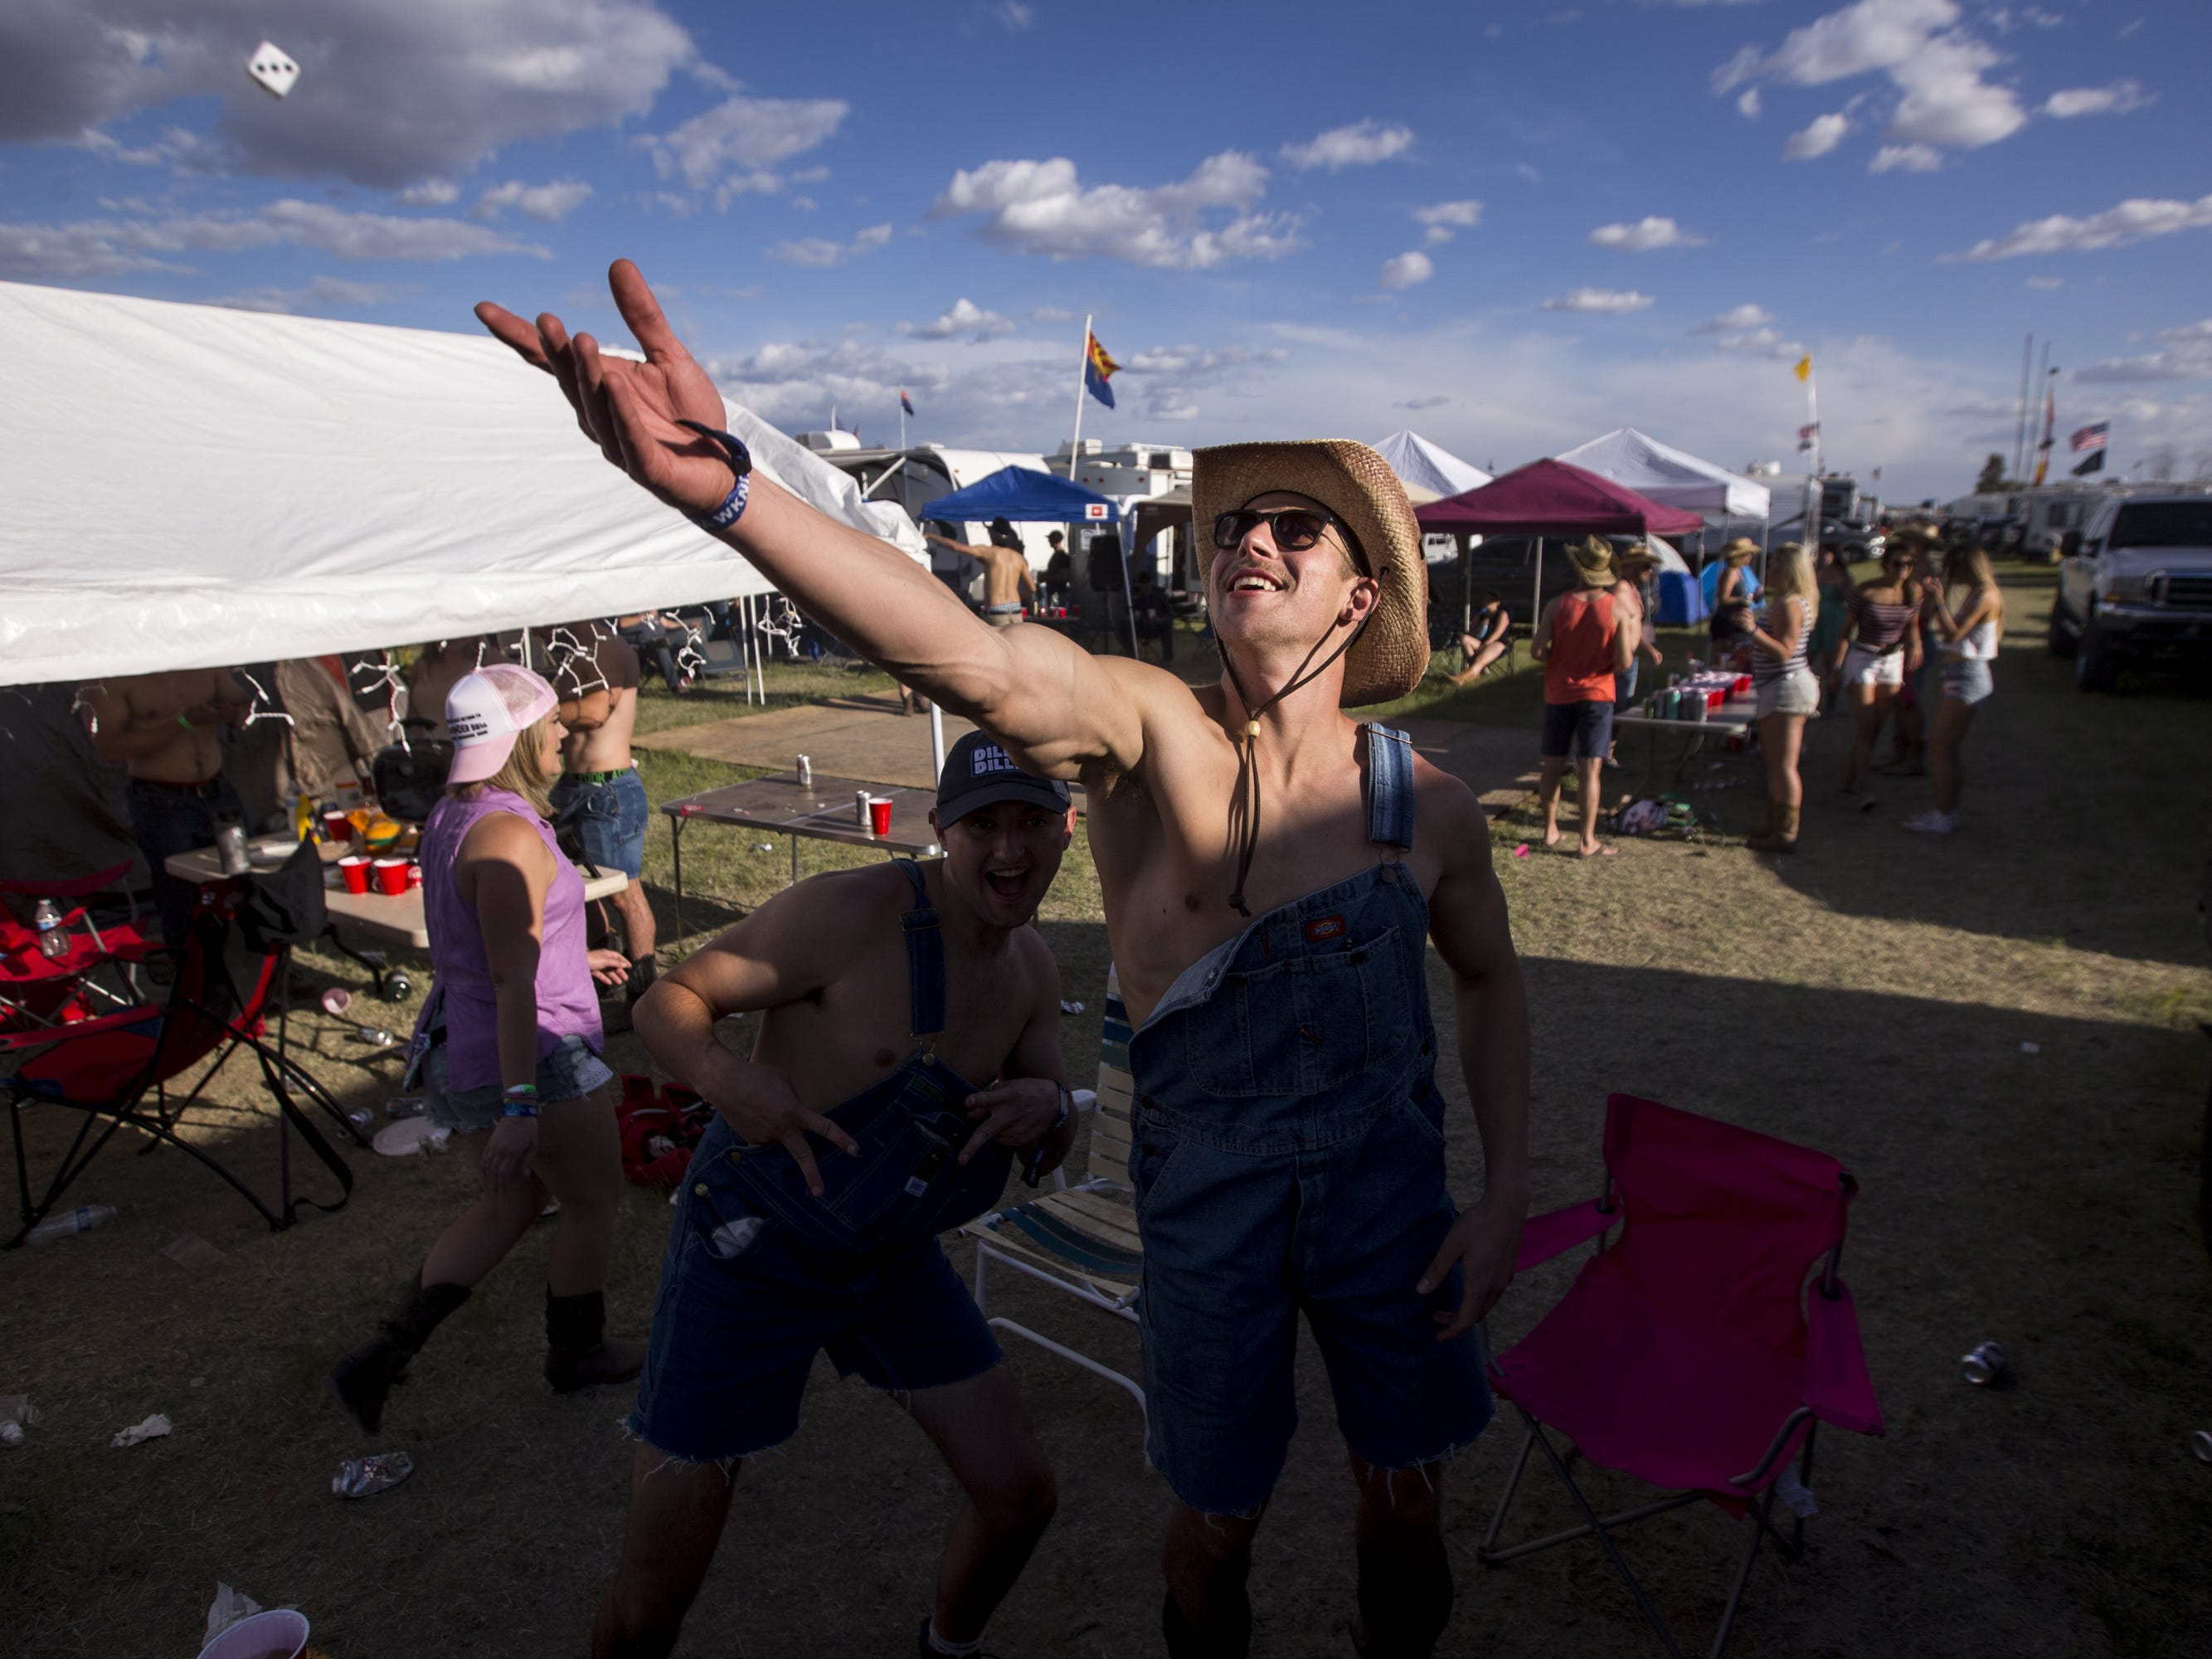 Zach Ondrejka plays beer die on Friday, April 12, 2019, during Day 2 of Country Thunder Arizona in Florence, Ariz.